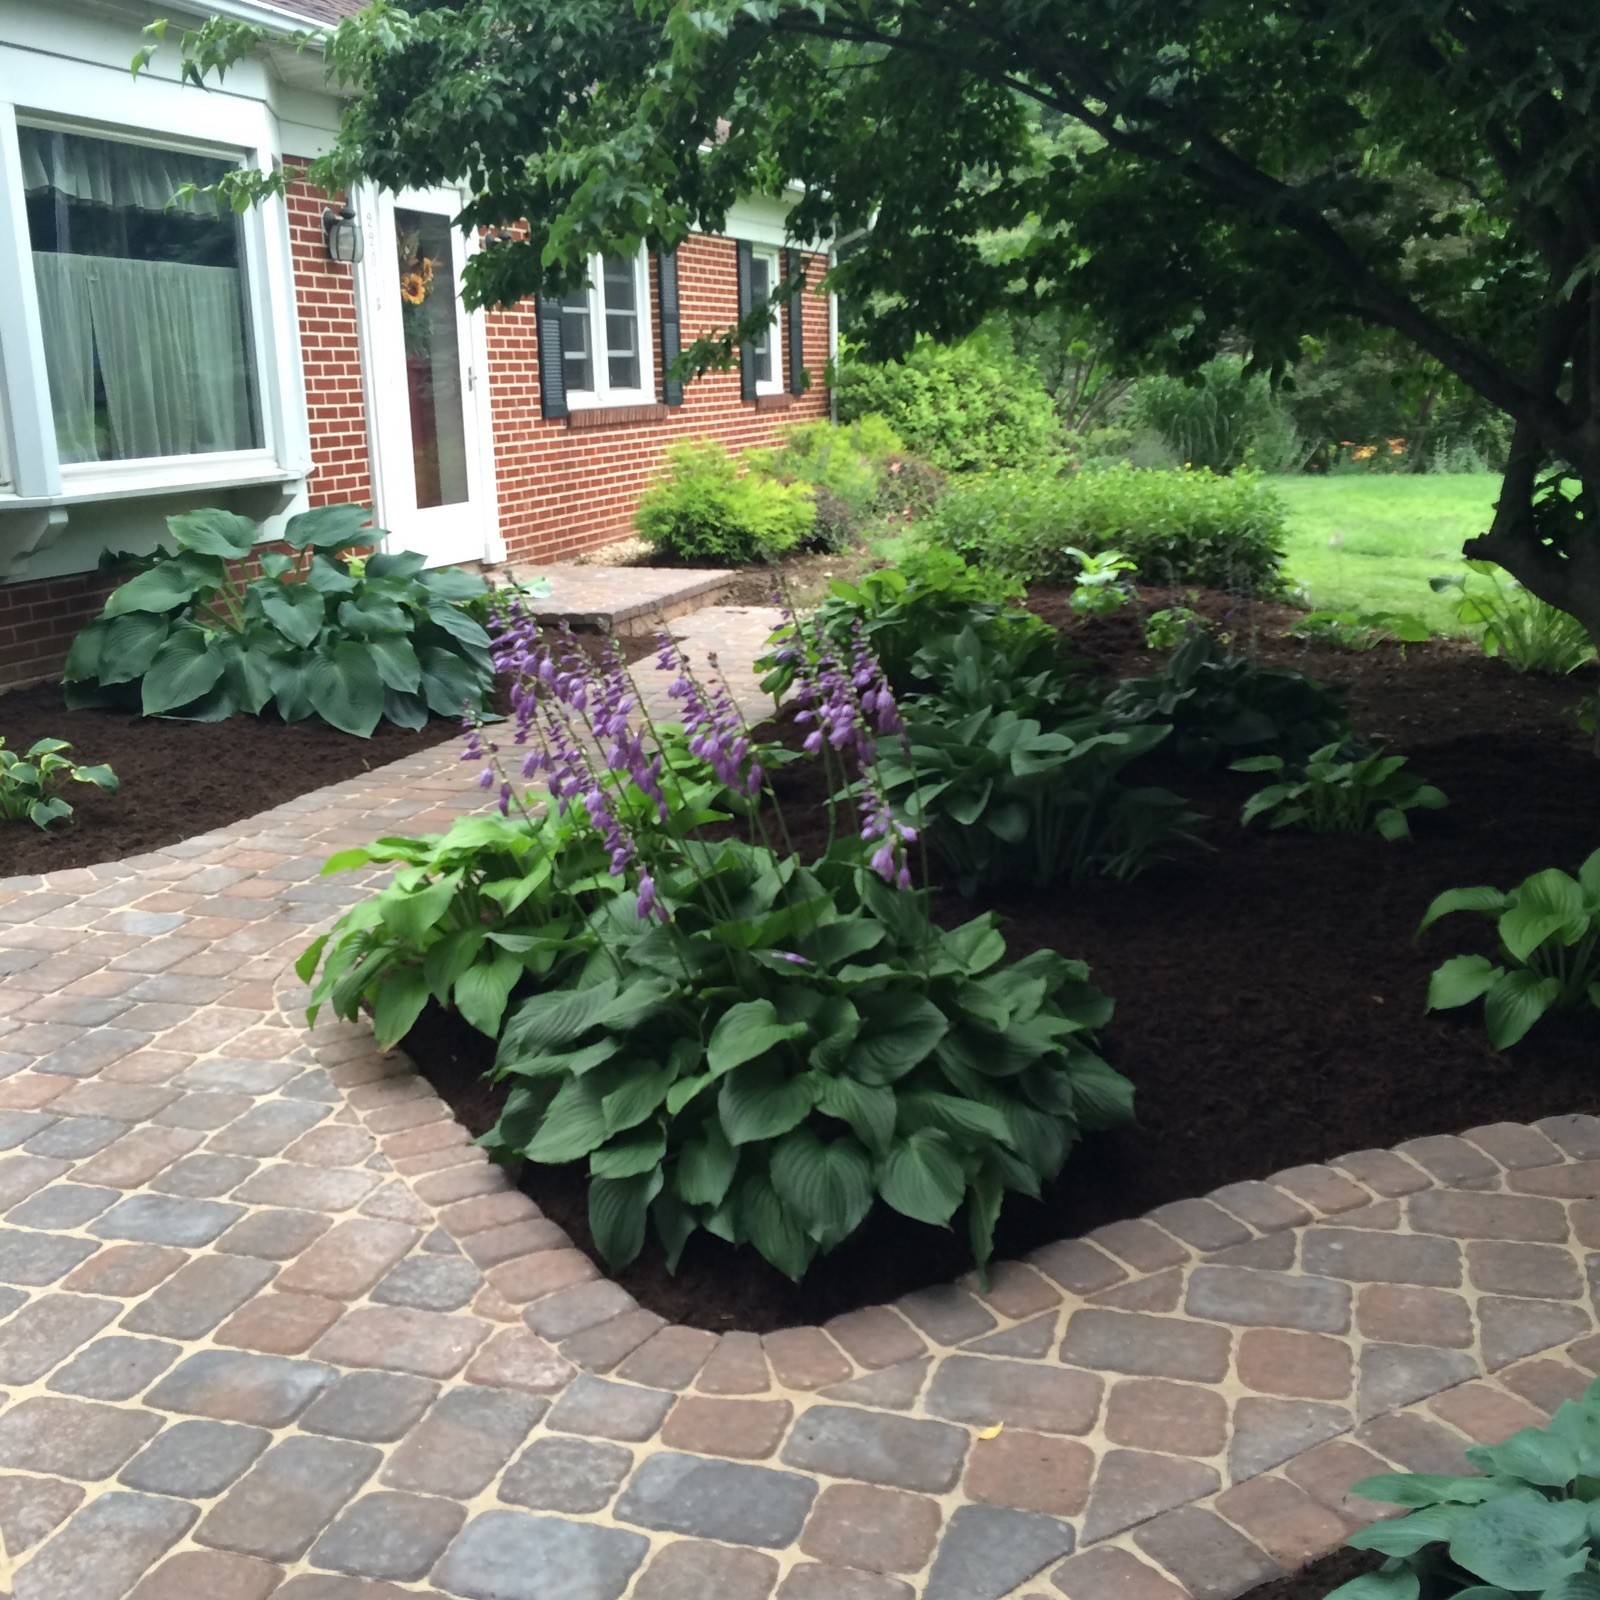 New walkway, fresh mulched beds